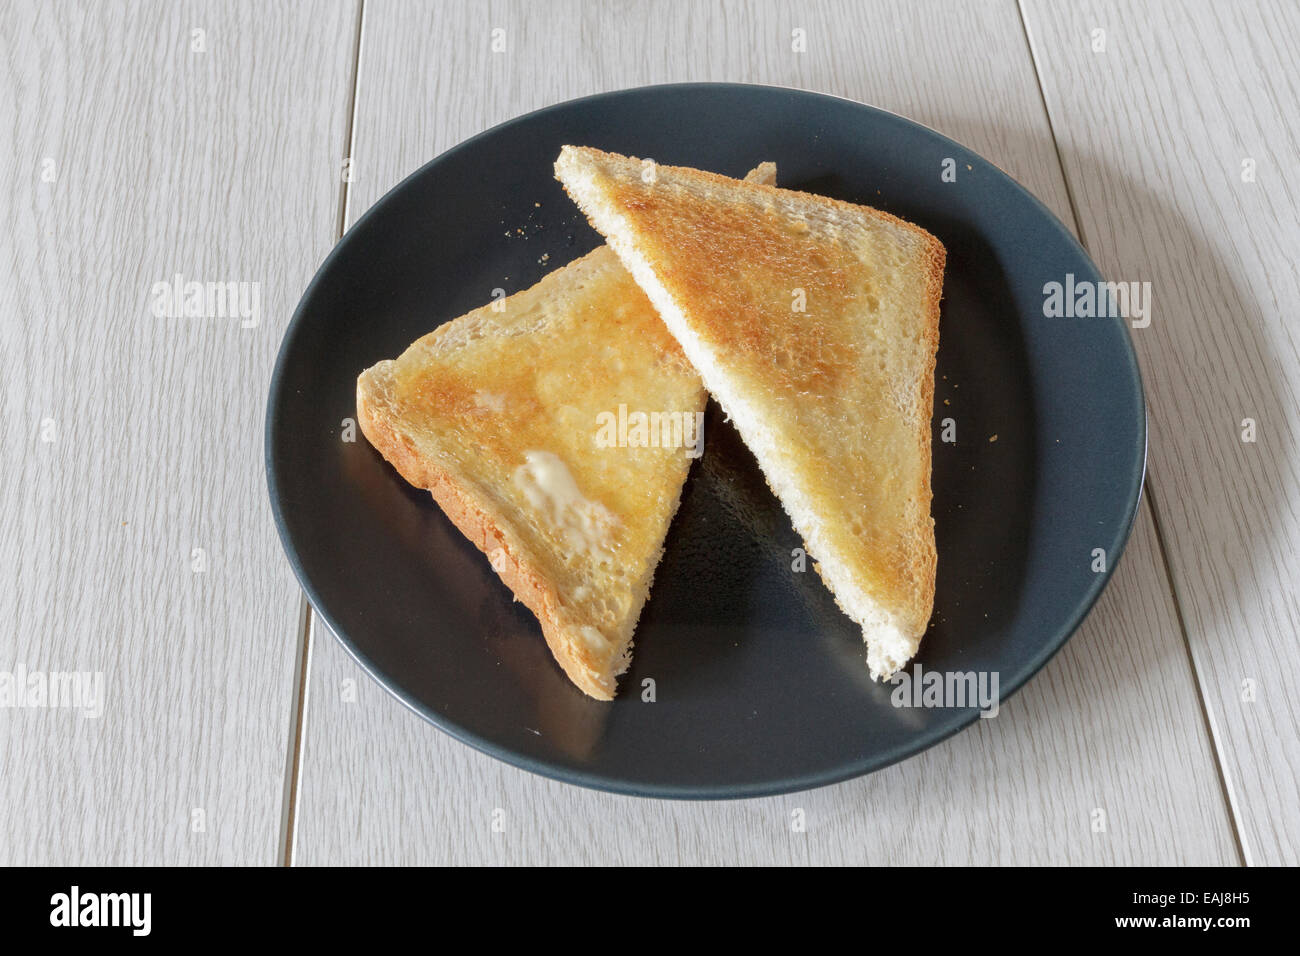 Piece of buttered hot toast, cut into triangles on a plate - Stock Image